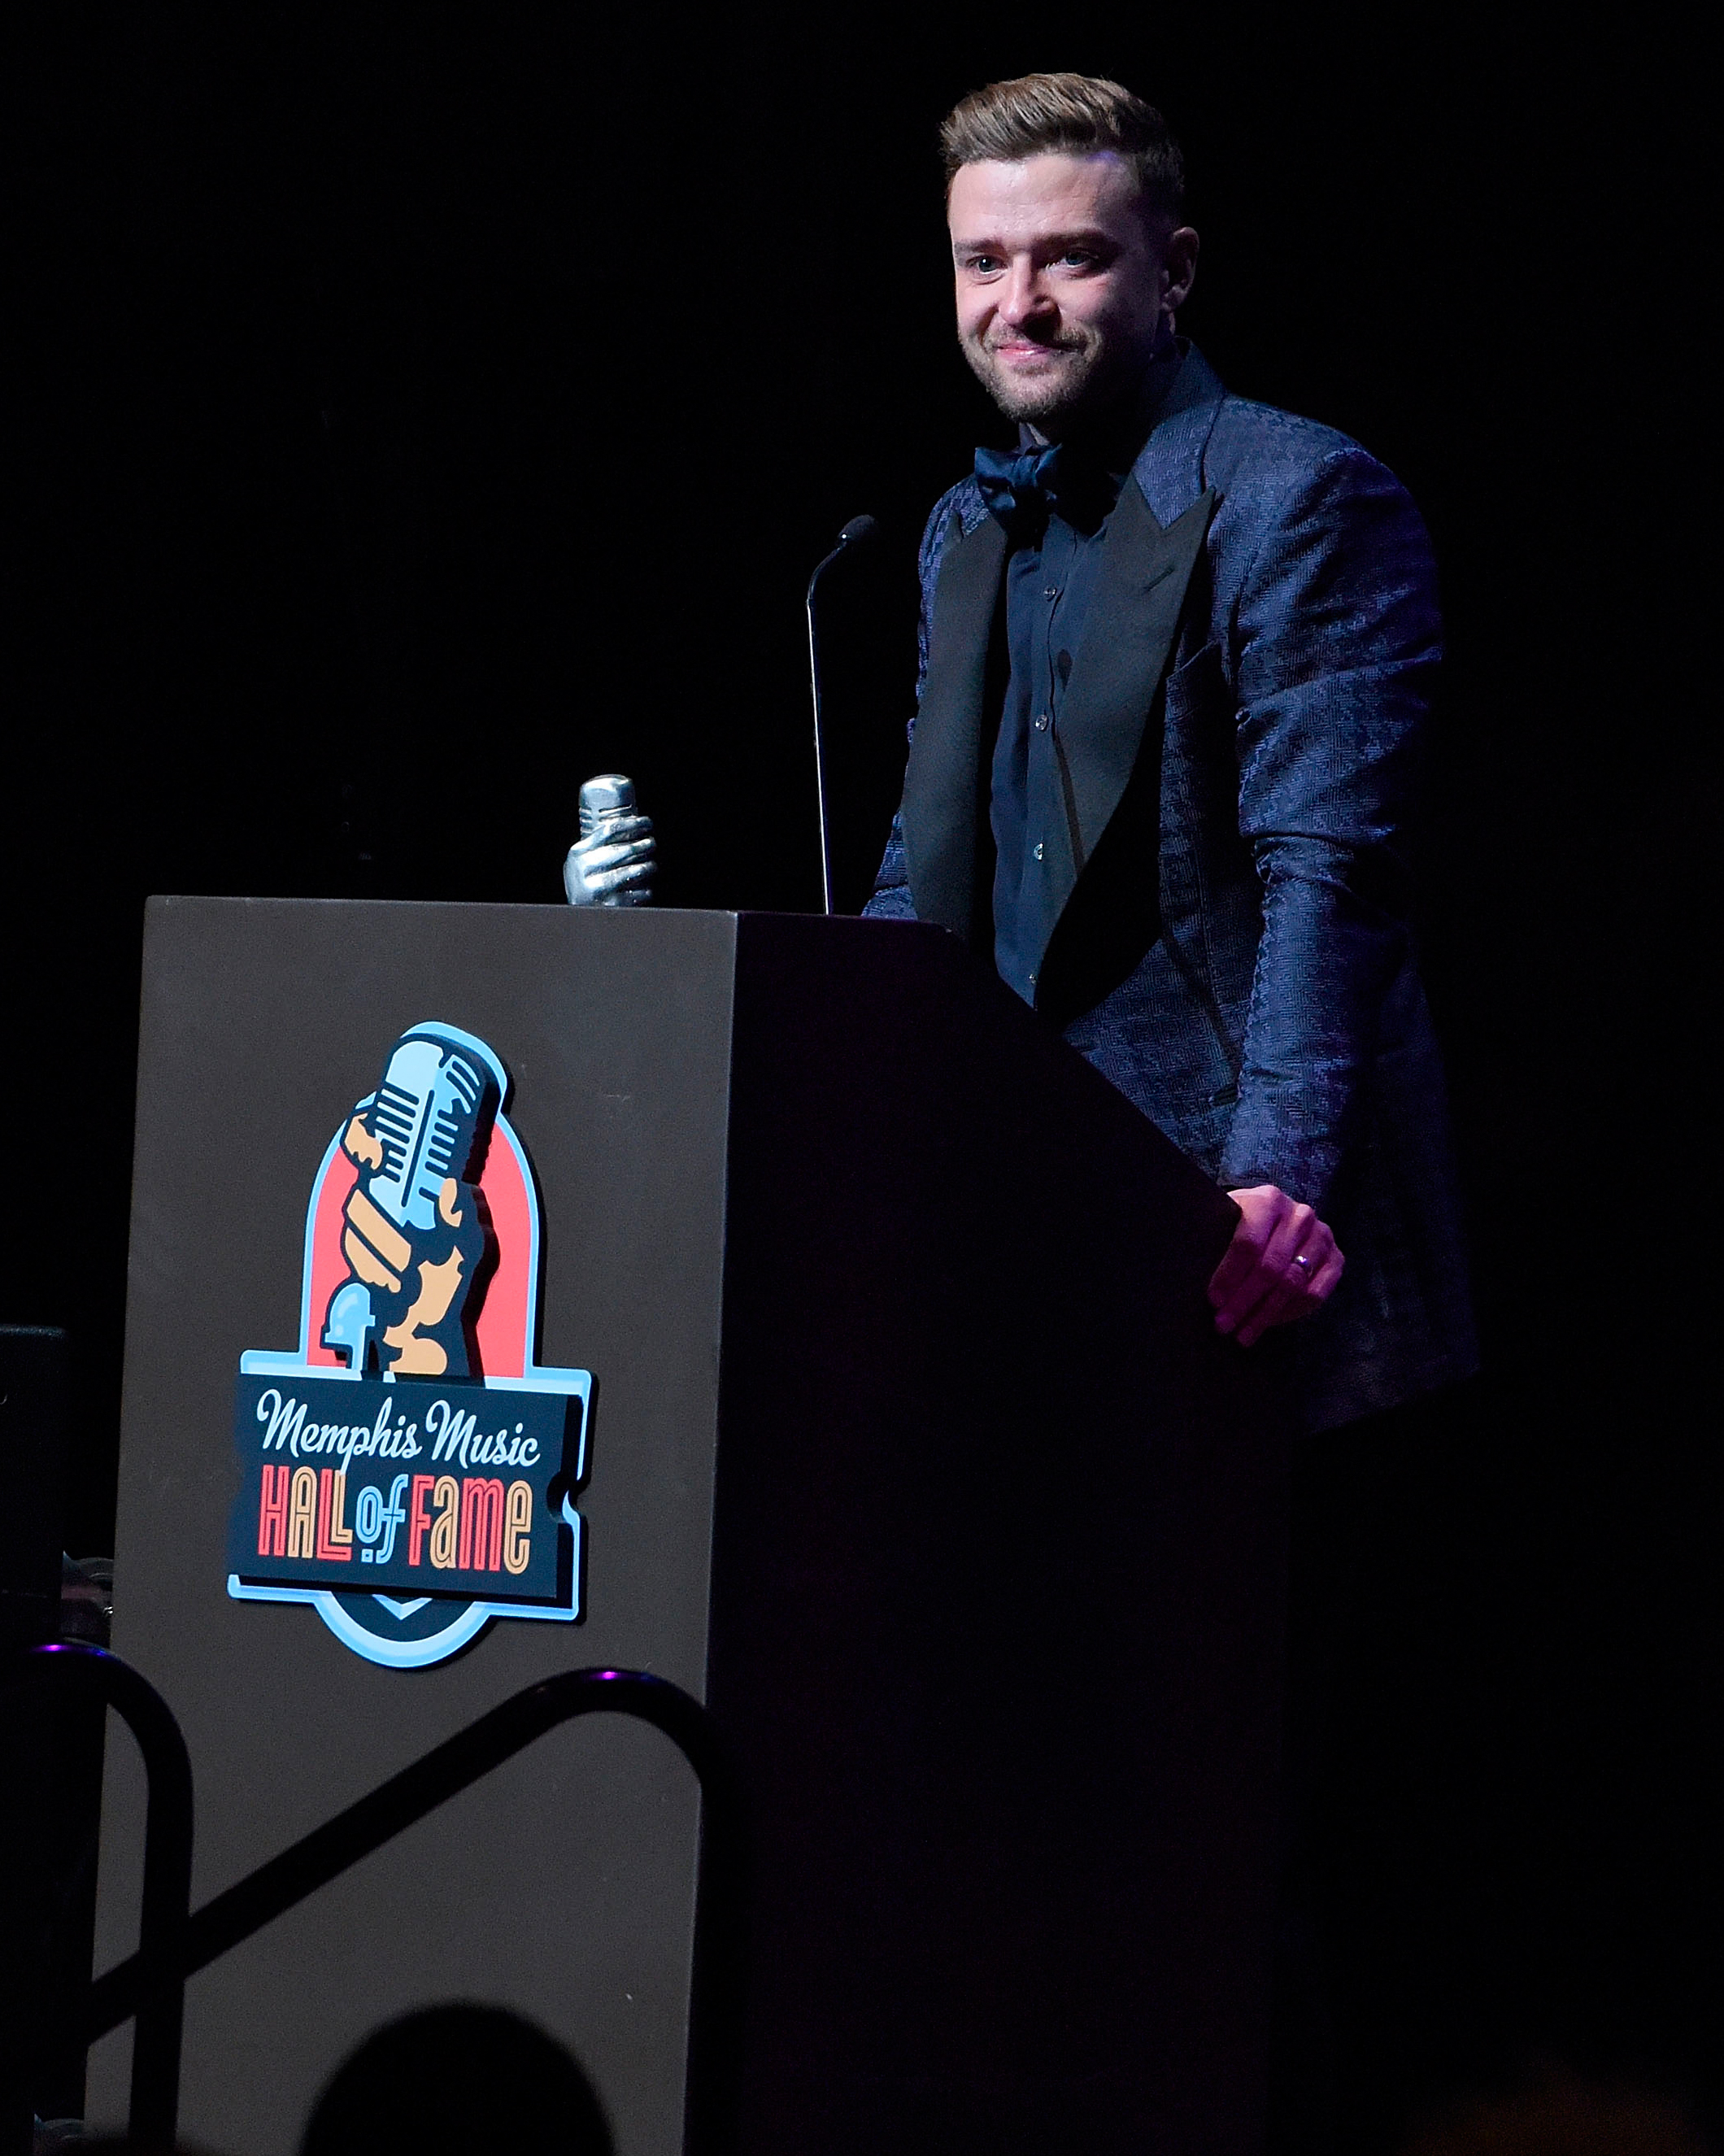 justin-timberlake-receives-award-1015.jpg